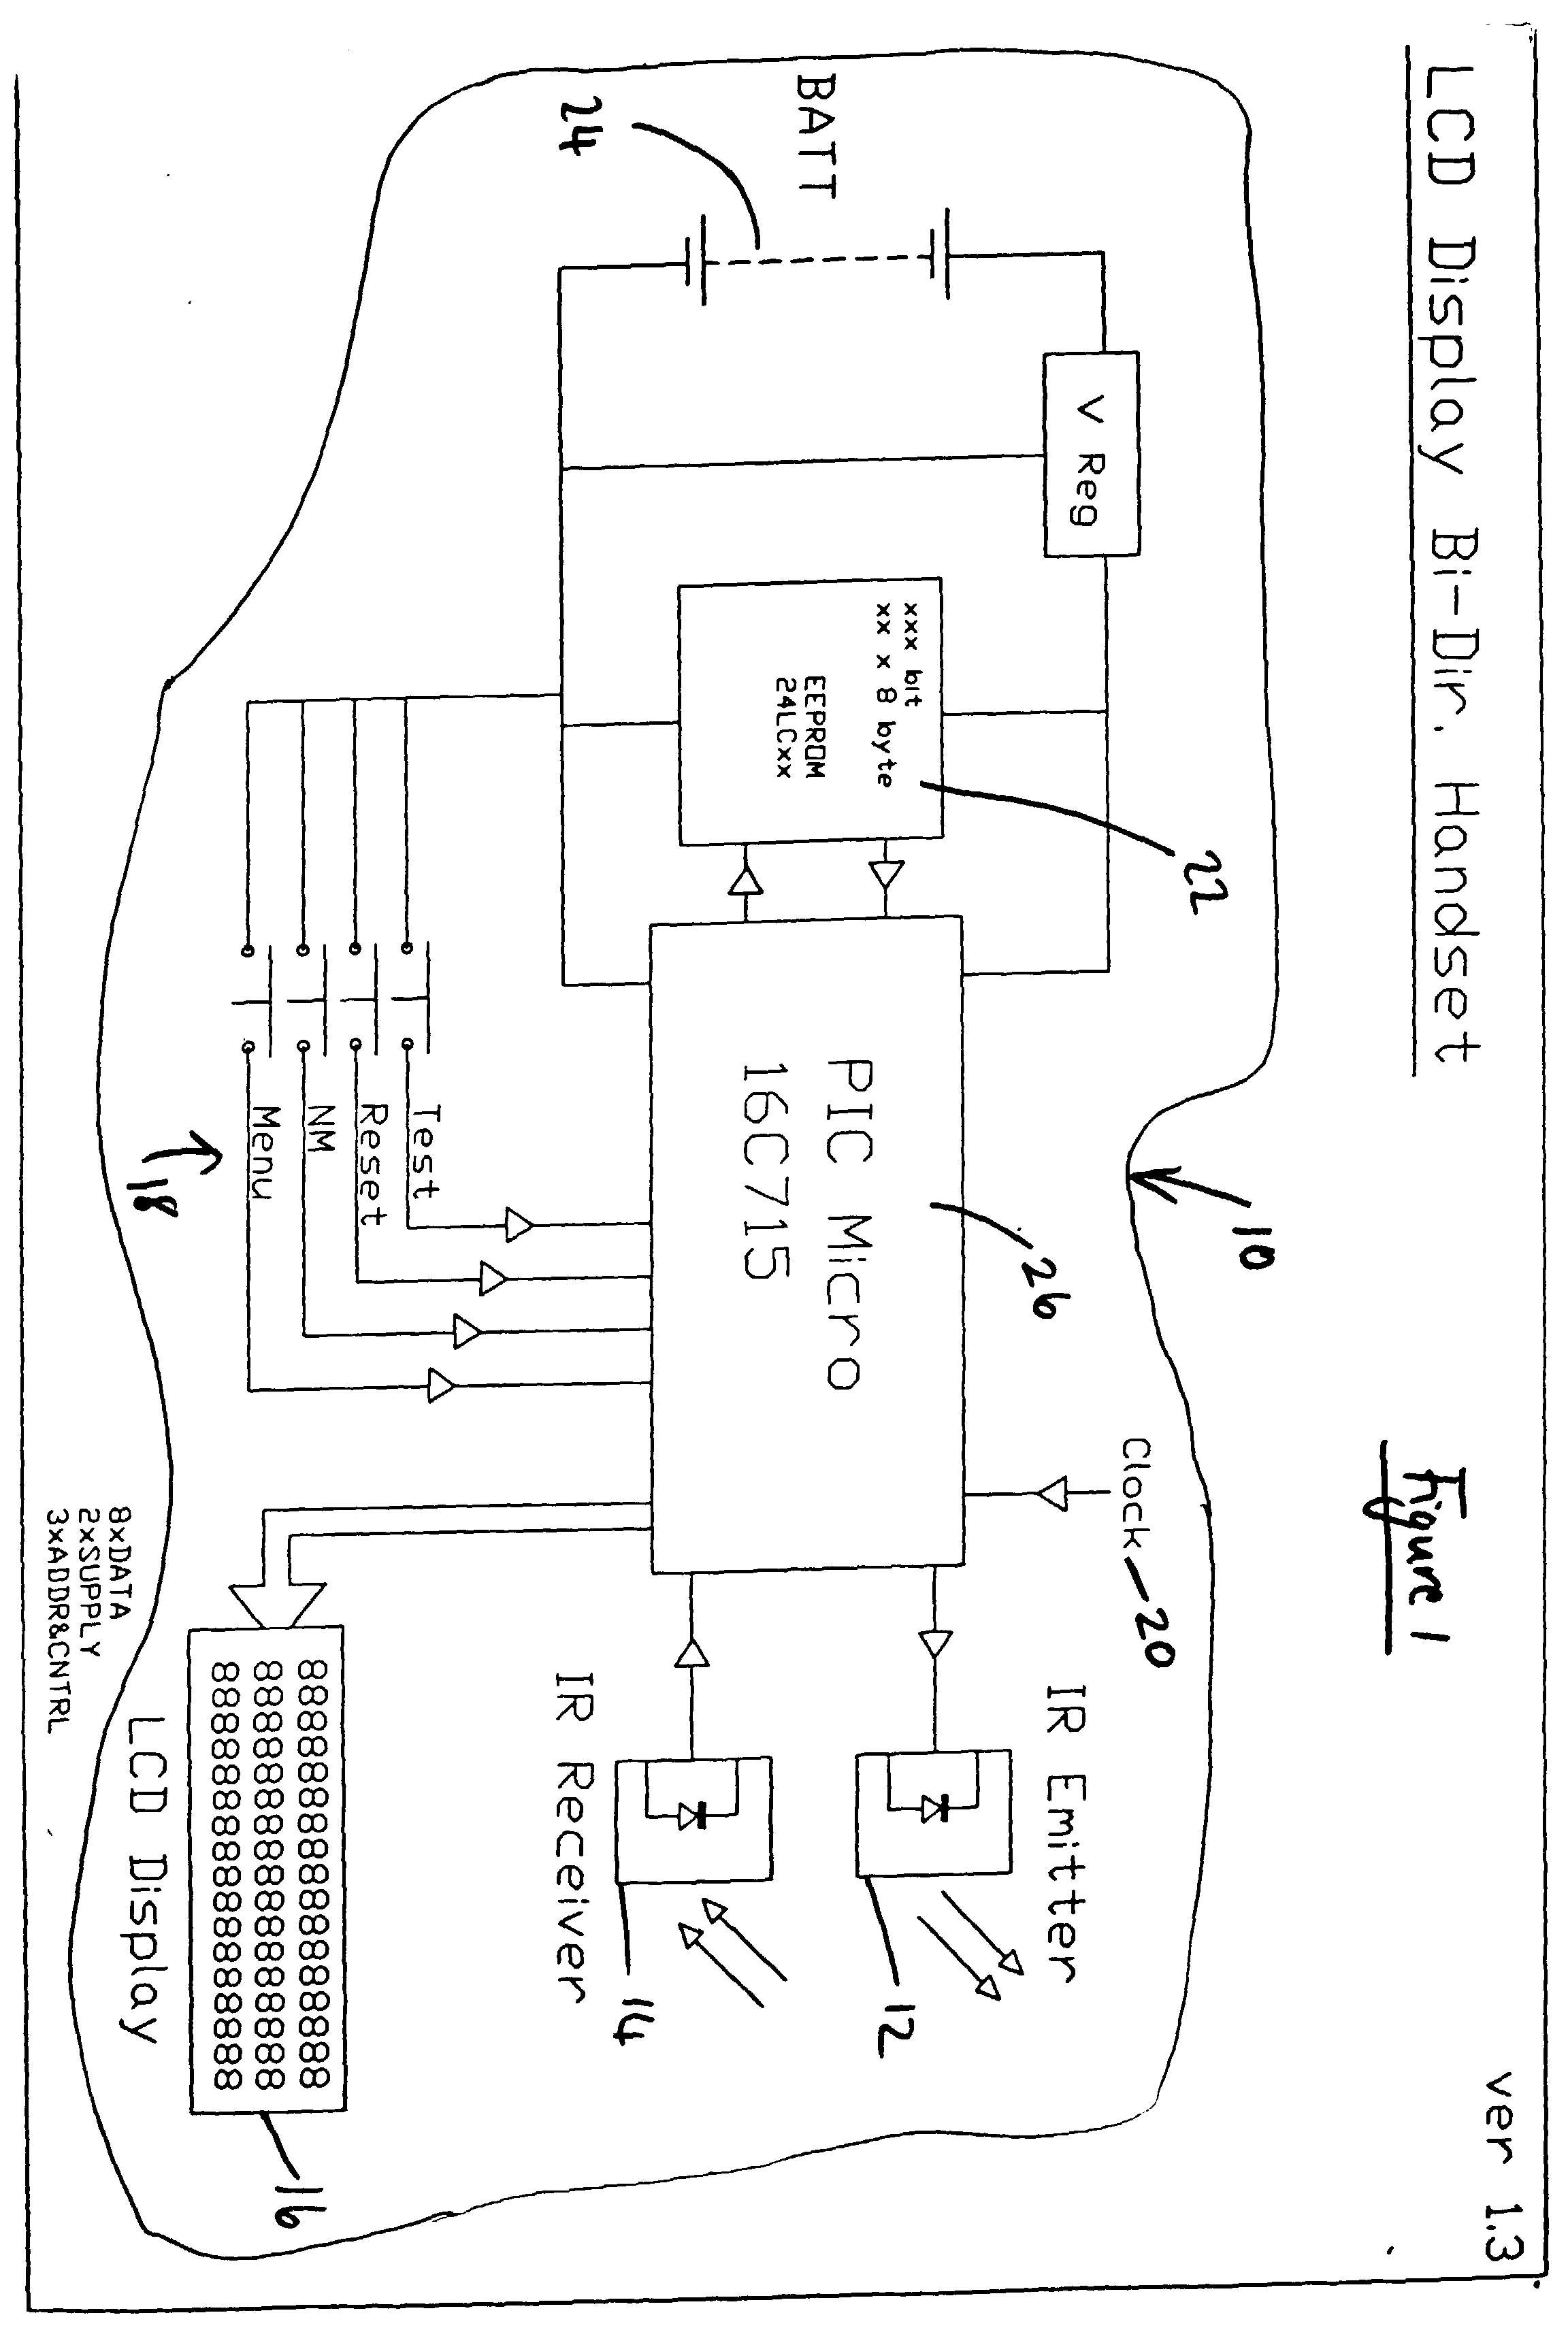 00160001 patent ep1035628a1 improvements relating to emergency lighting emergency exit light wiring diagram at soozxer.org